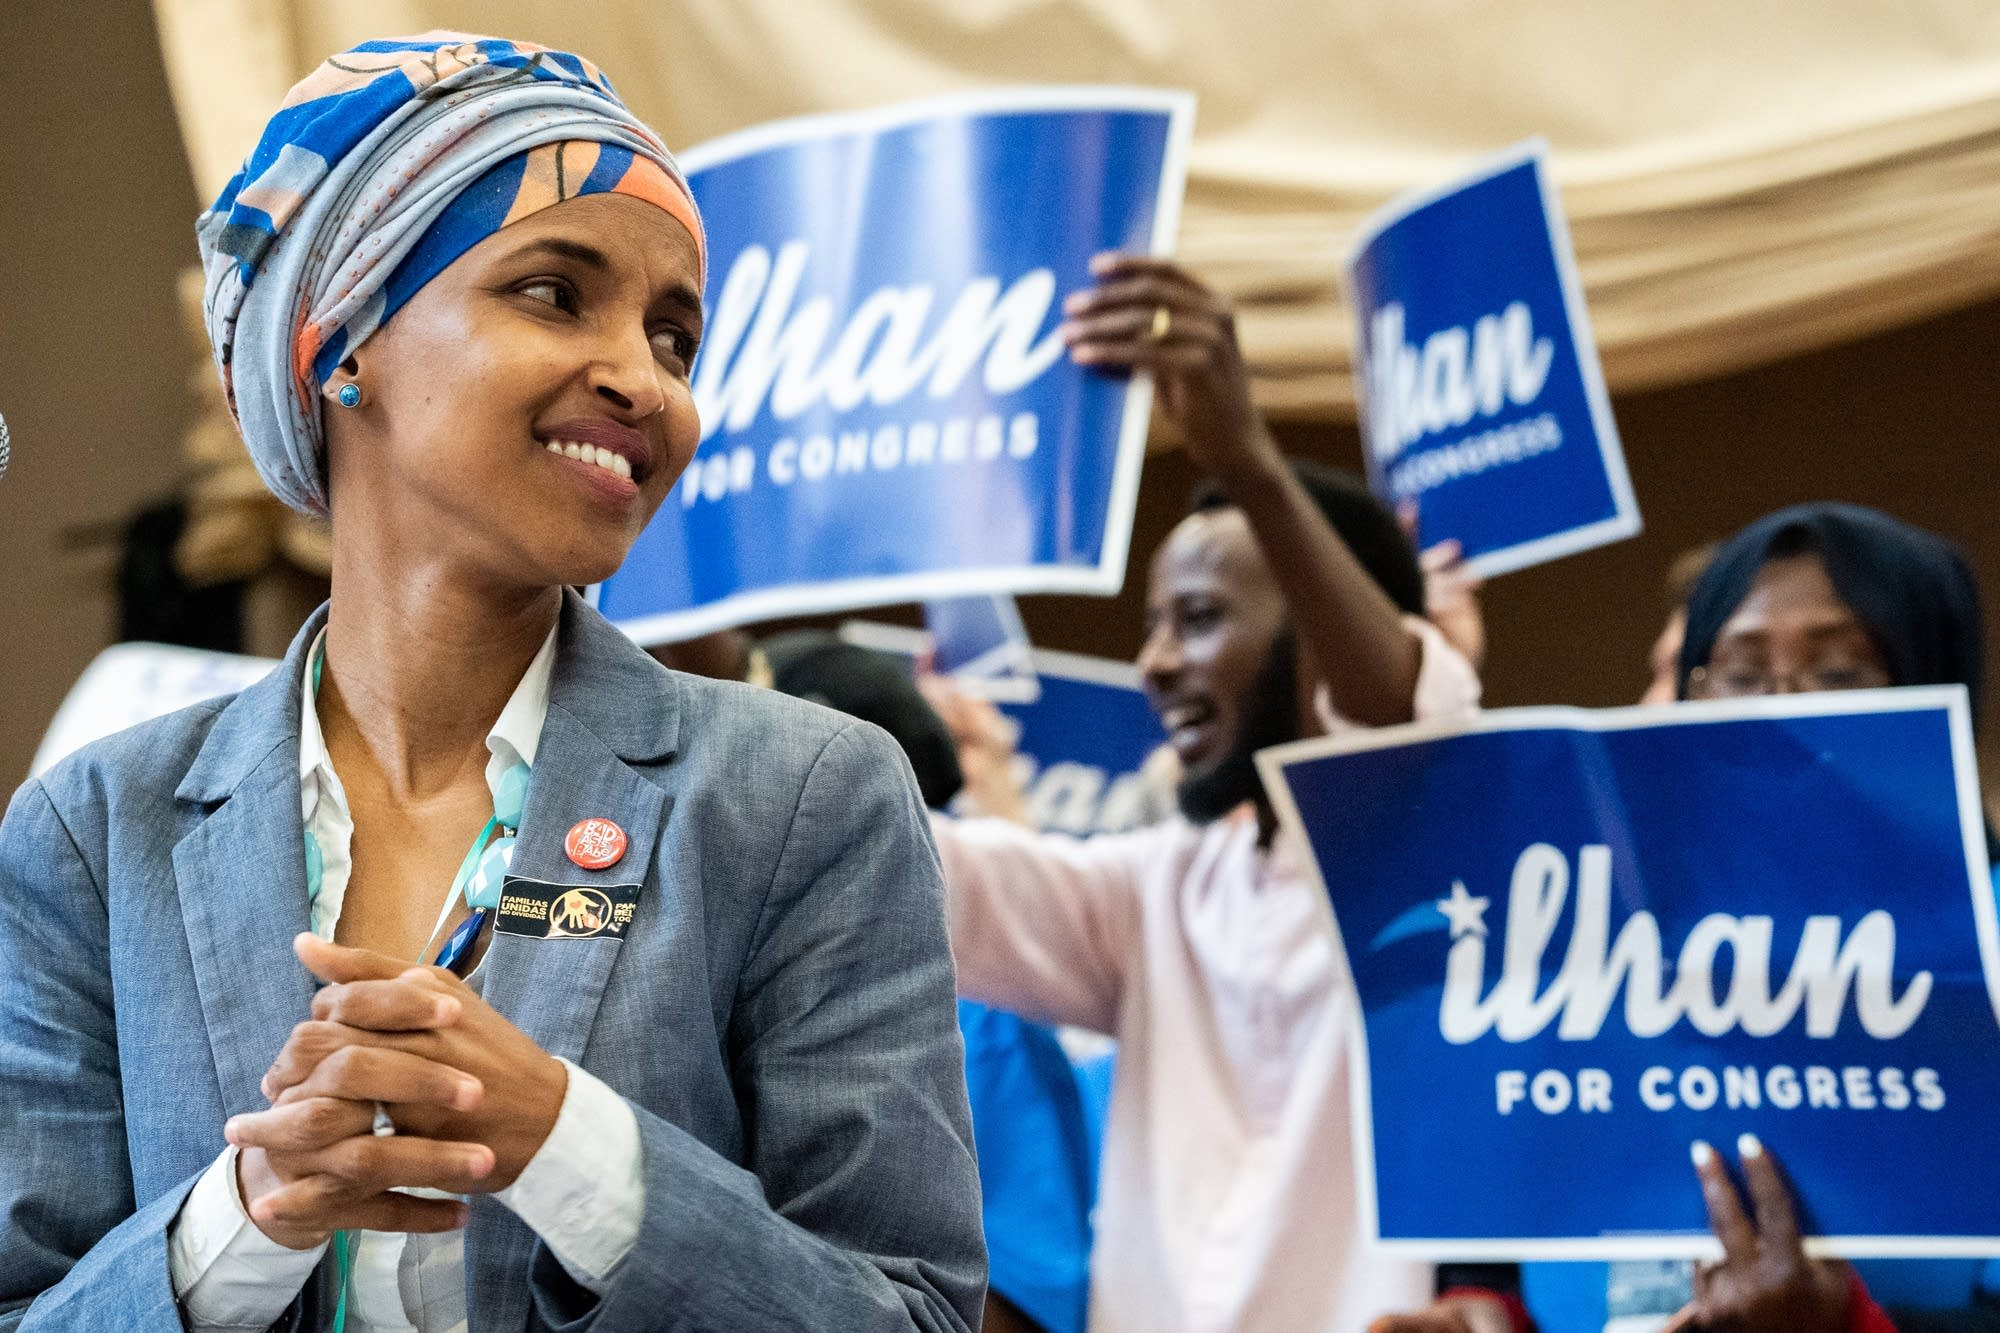 Ilhan Omar is running for Congress